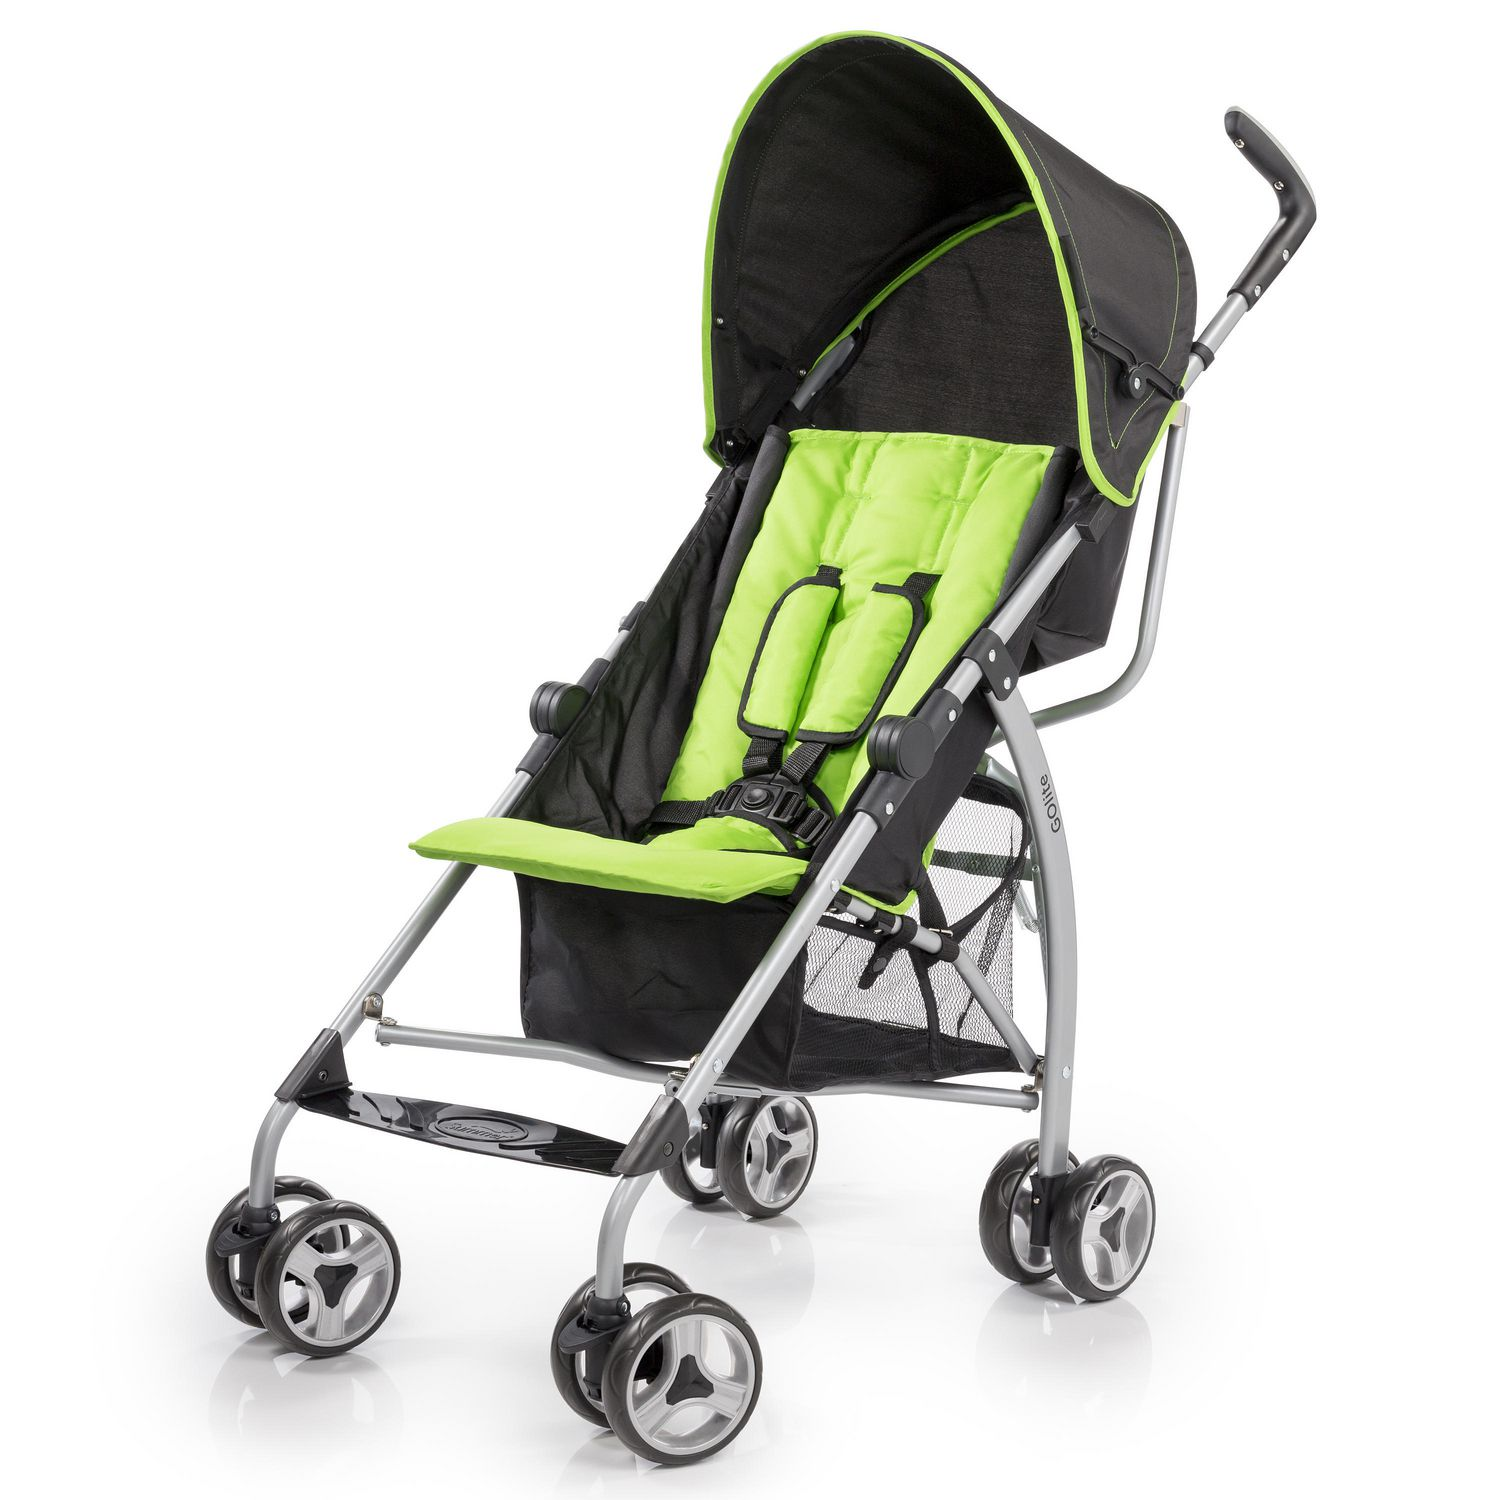 For younger kids, bring a stroller. The stroller can hold your backpack, plus it gives them a place to sit instead of you having to hold them when they get tired.